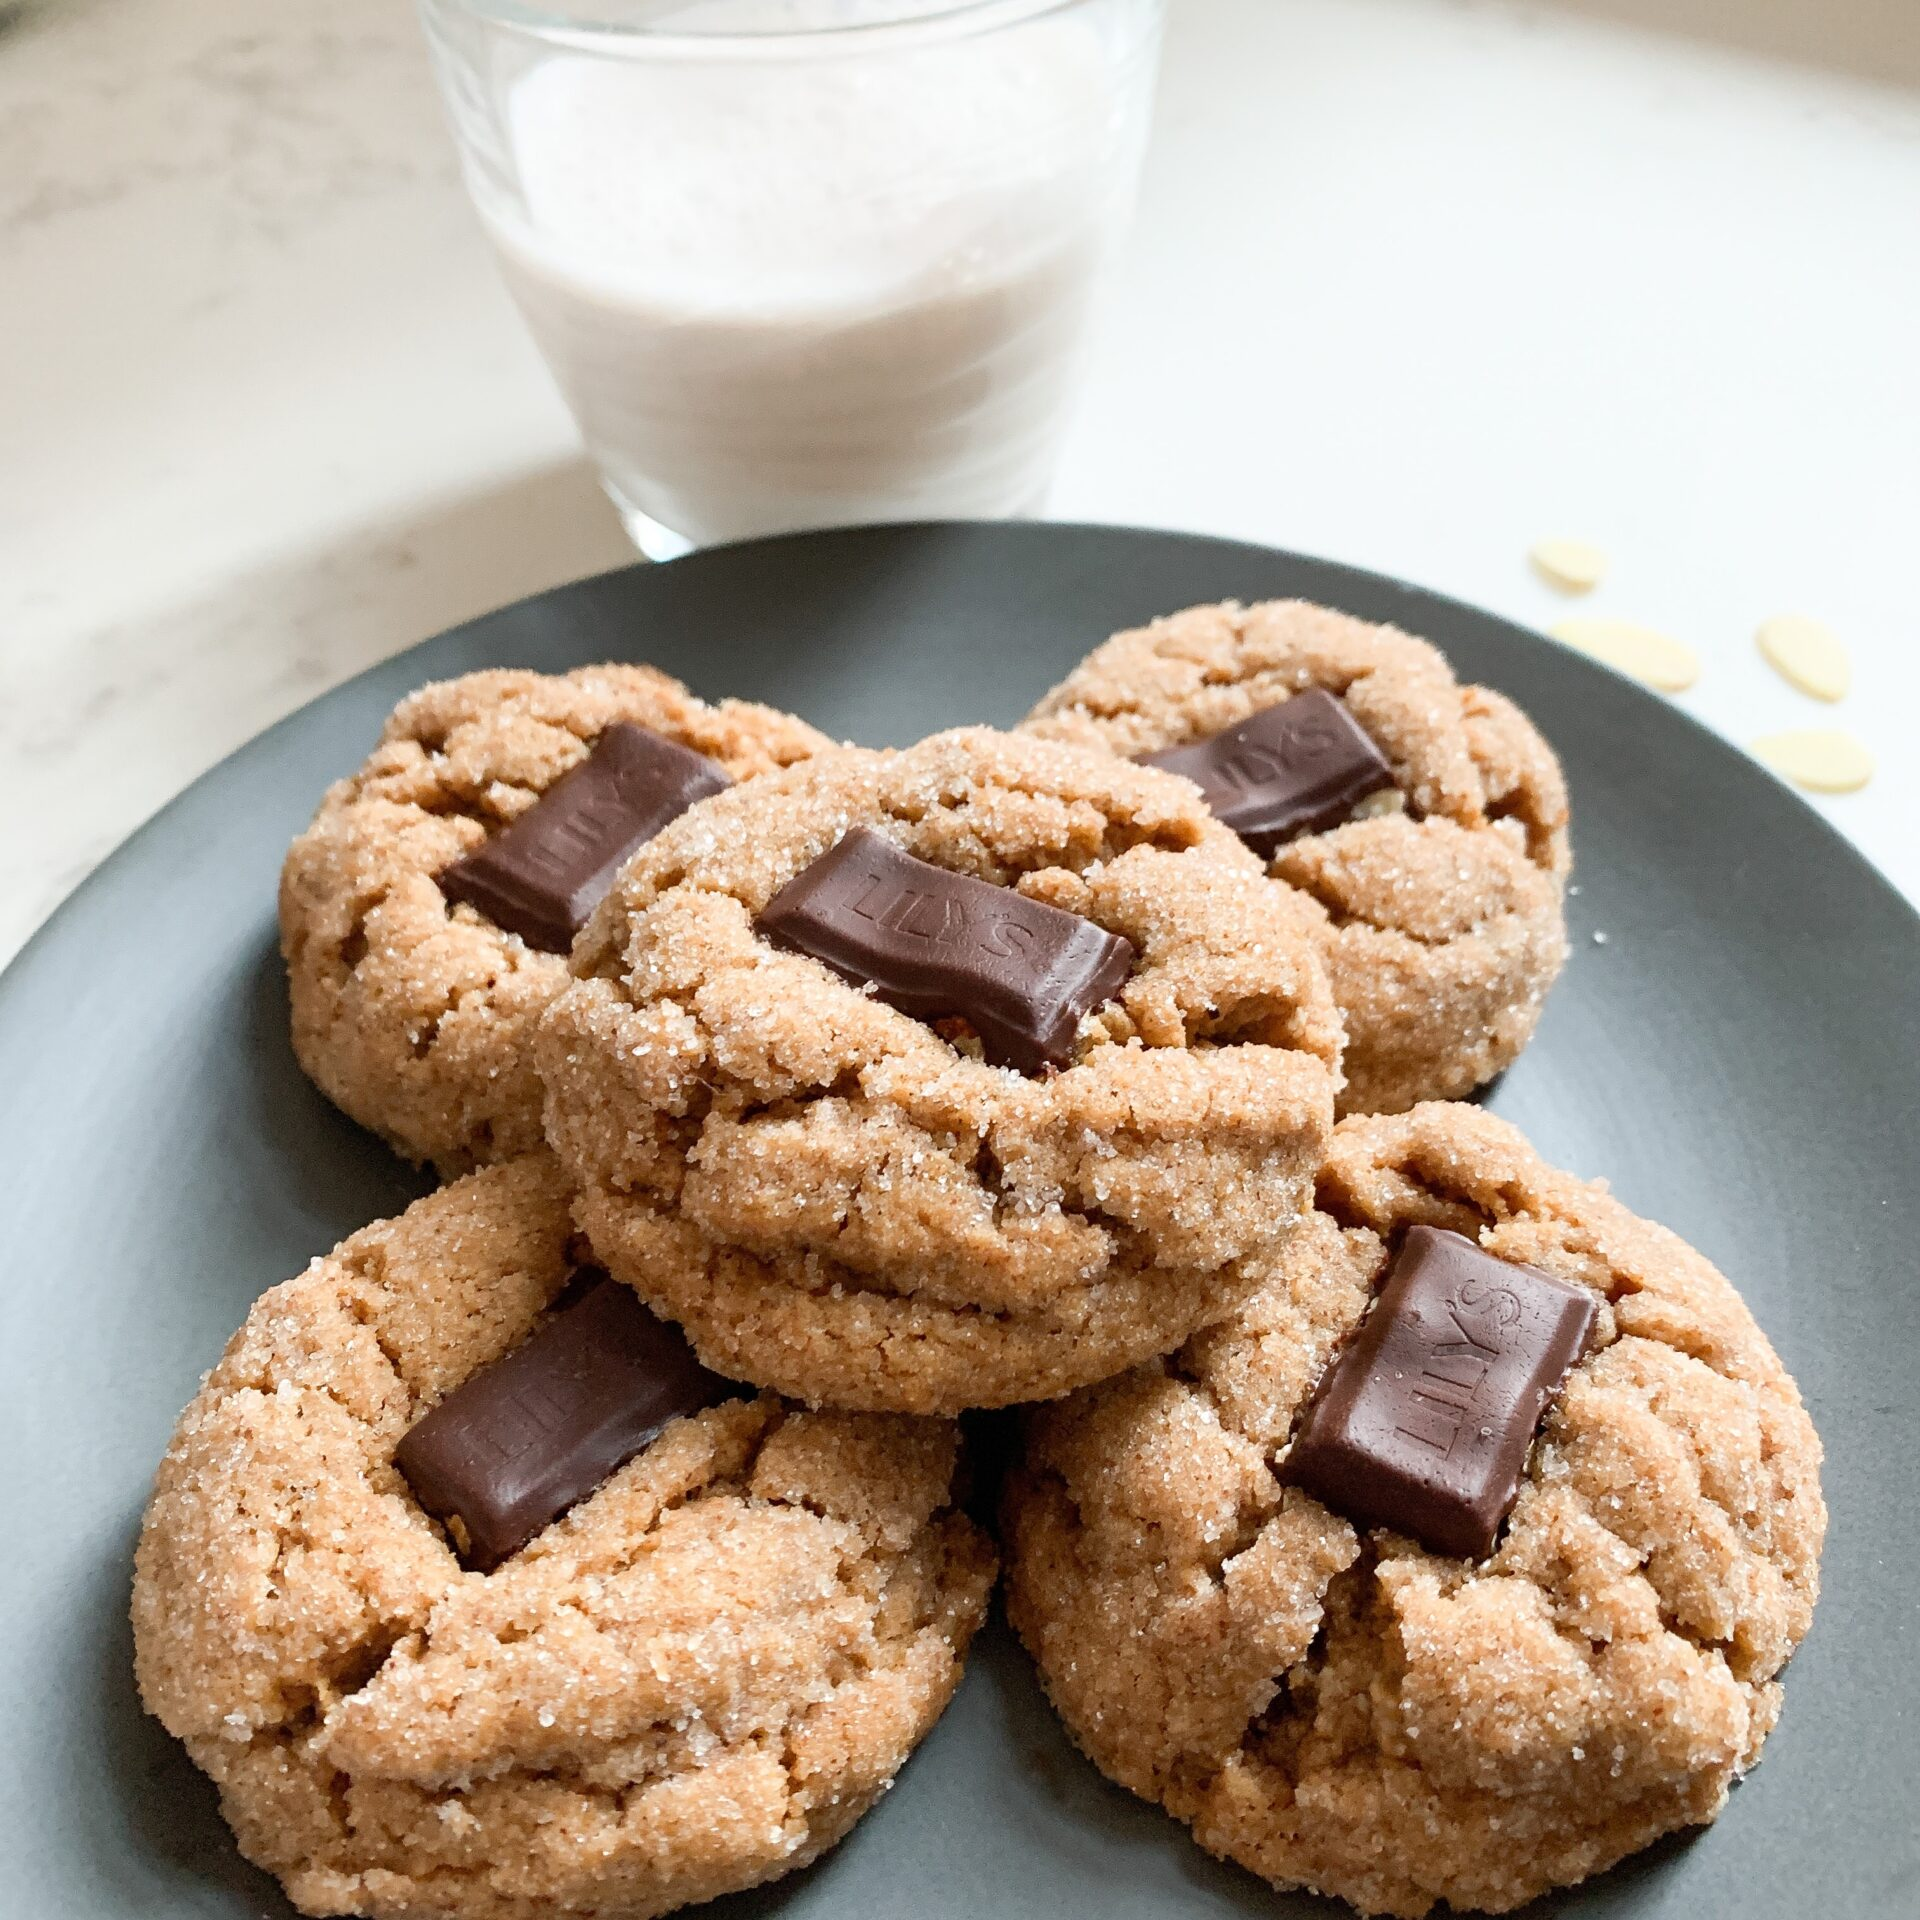 Cookies with chocolate in middle on blue plate with glass of milk.